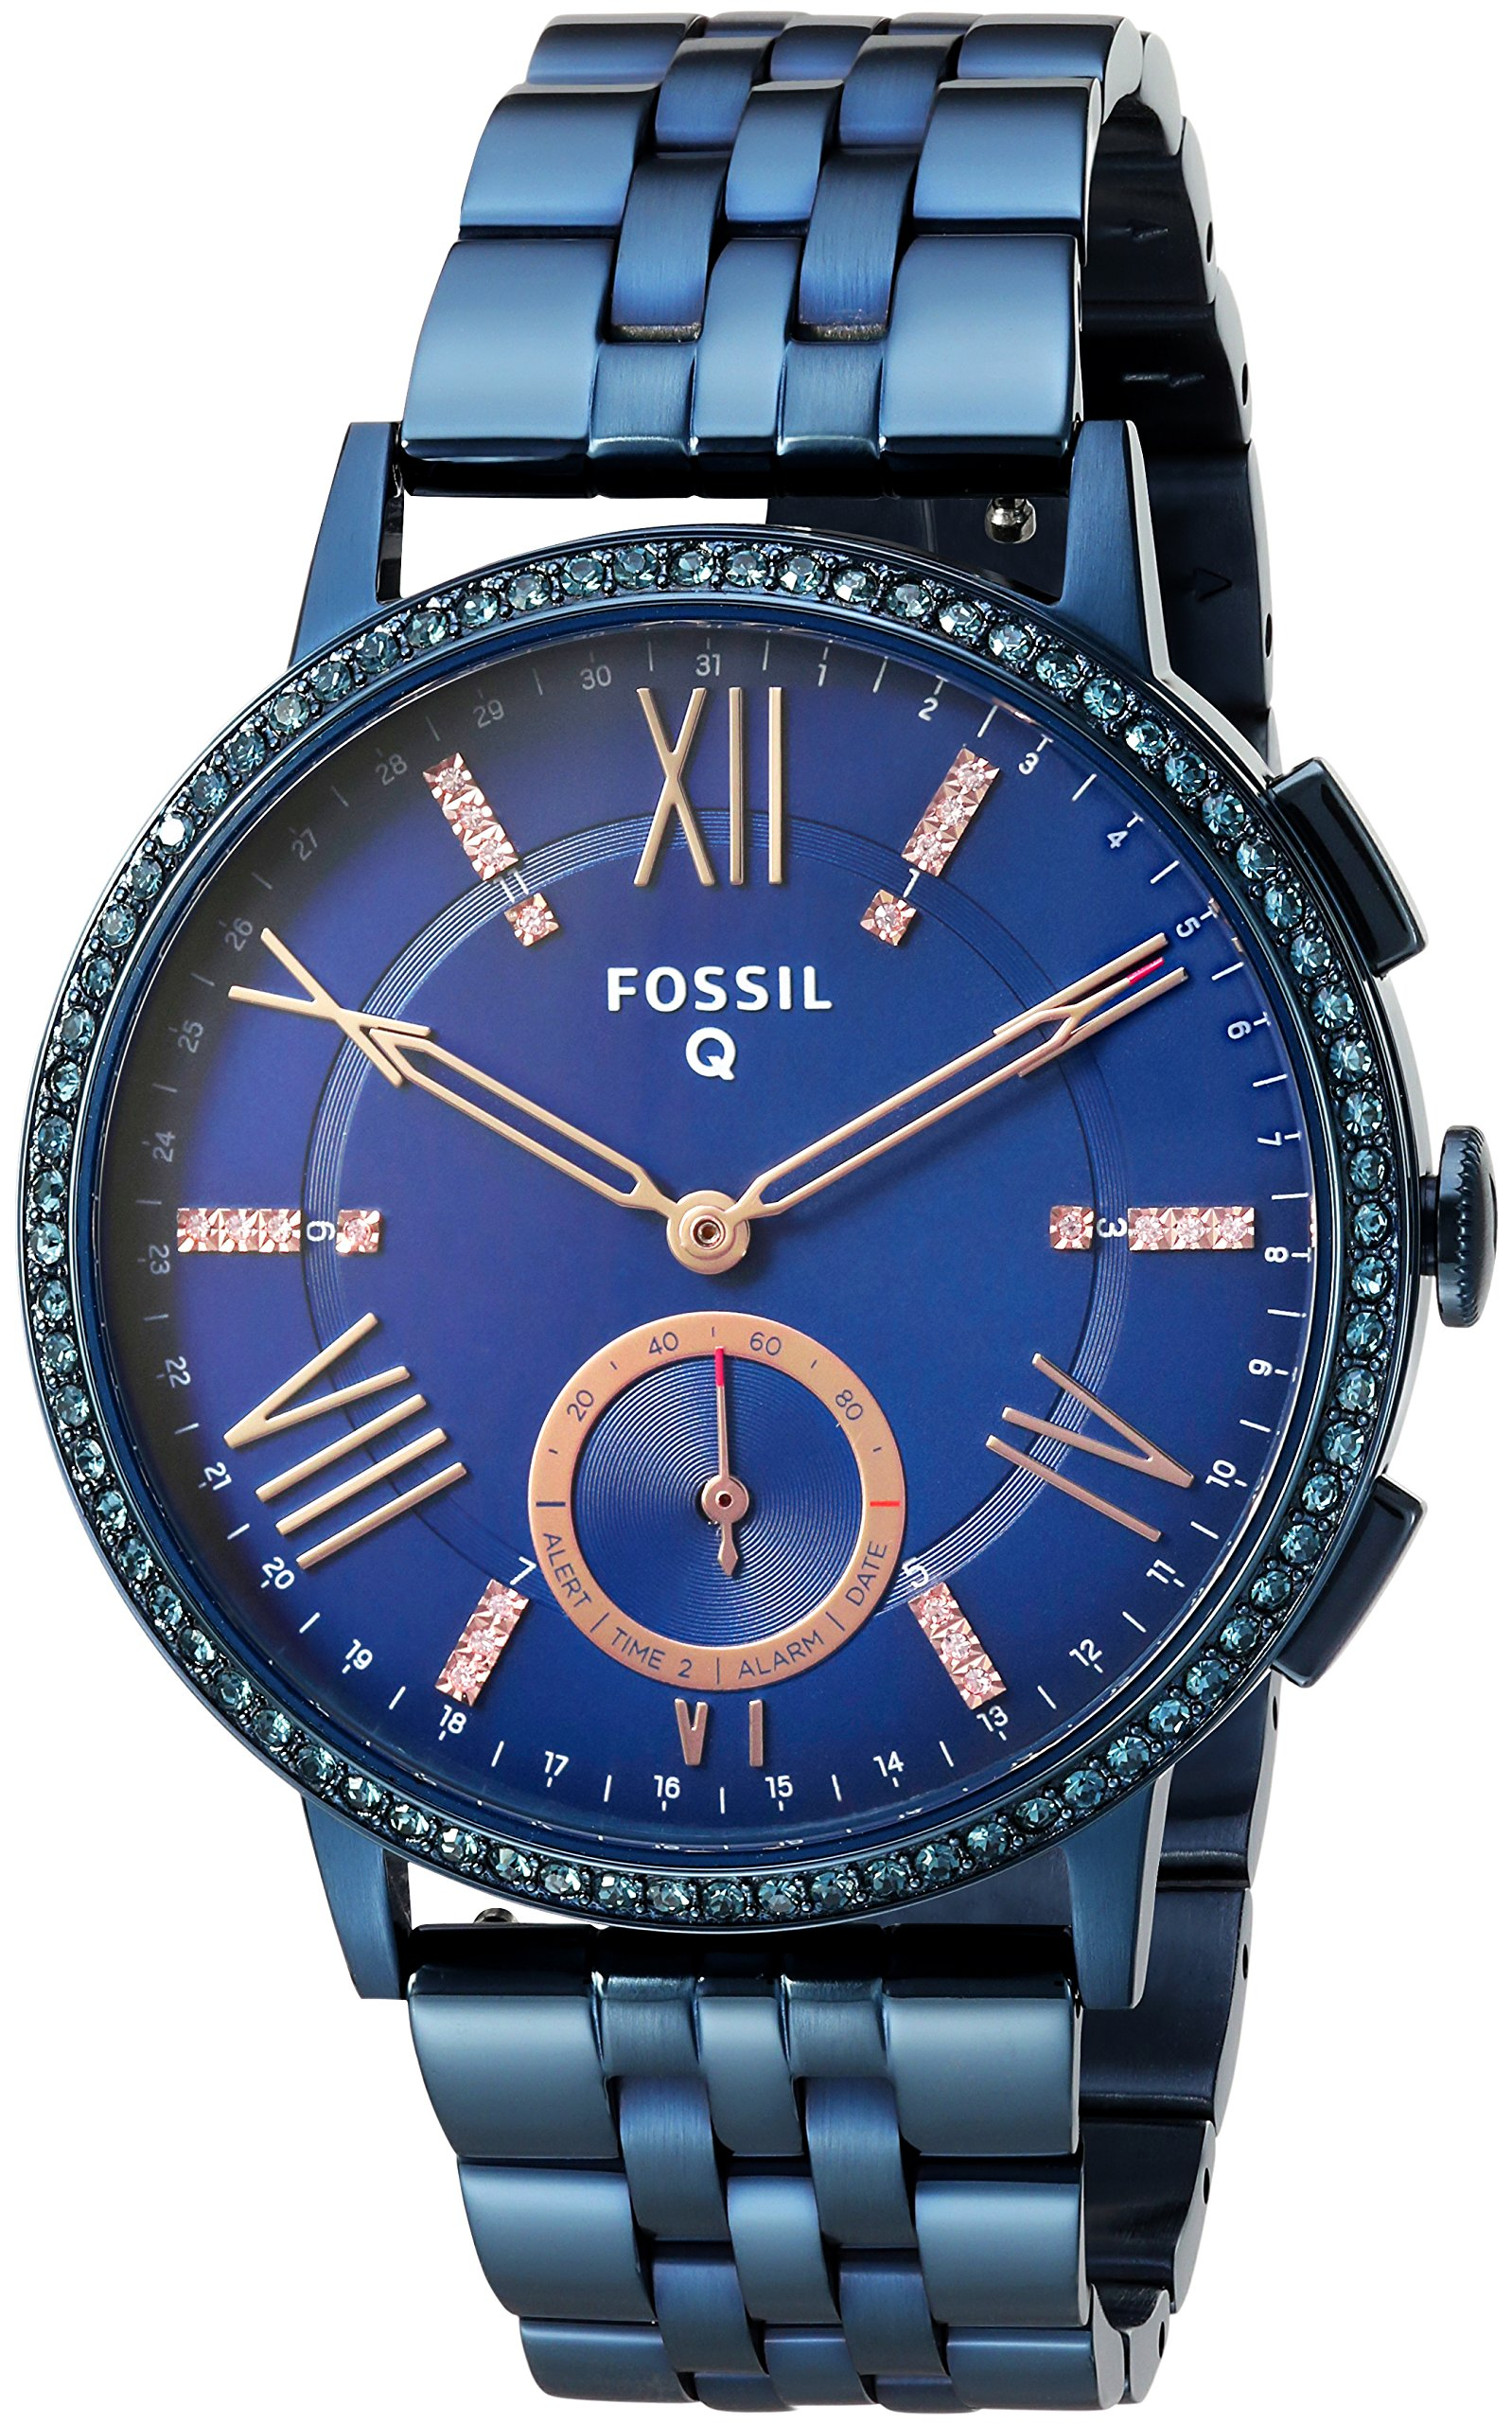 Fossil Hybrid Smartwatch - Q Gazer Navy Blue Stainless Steel